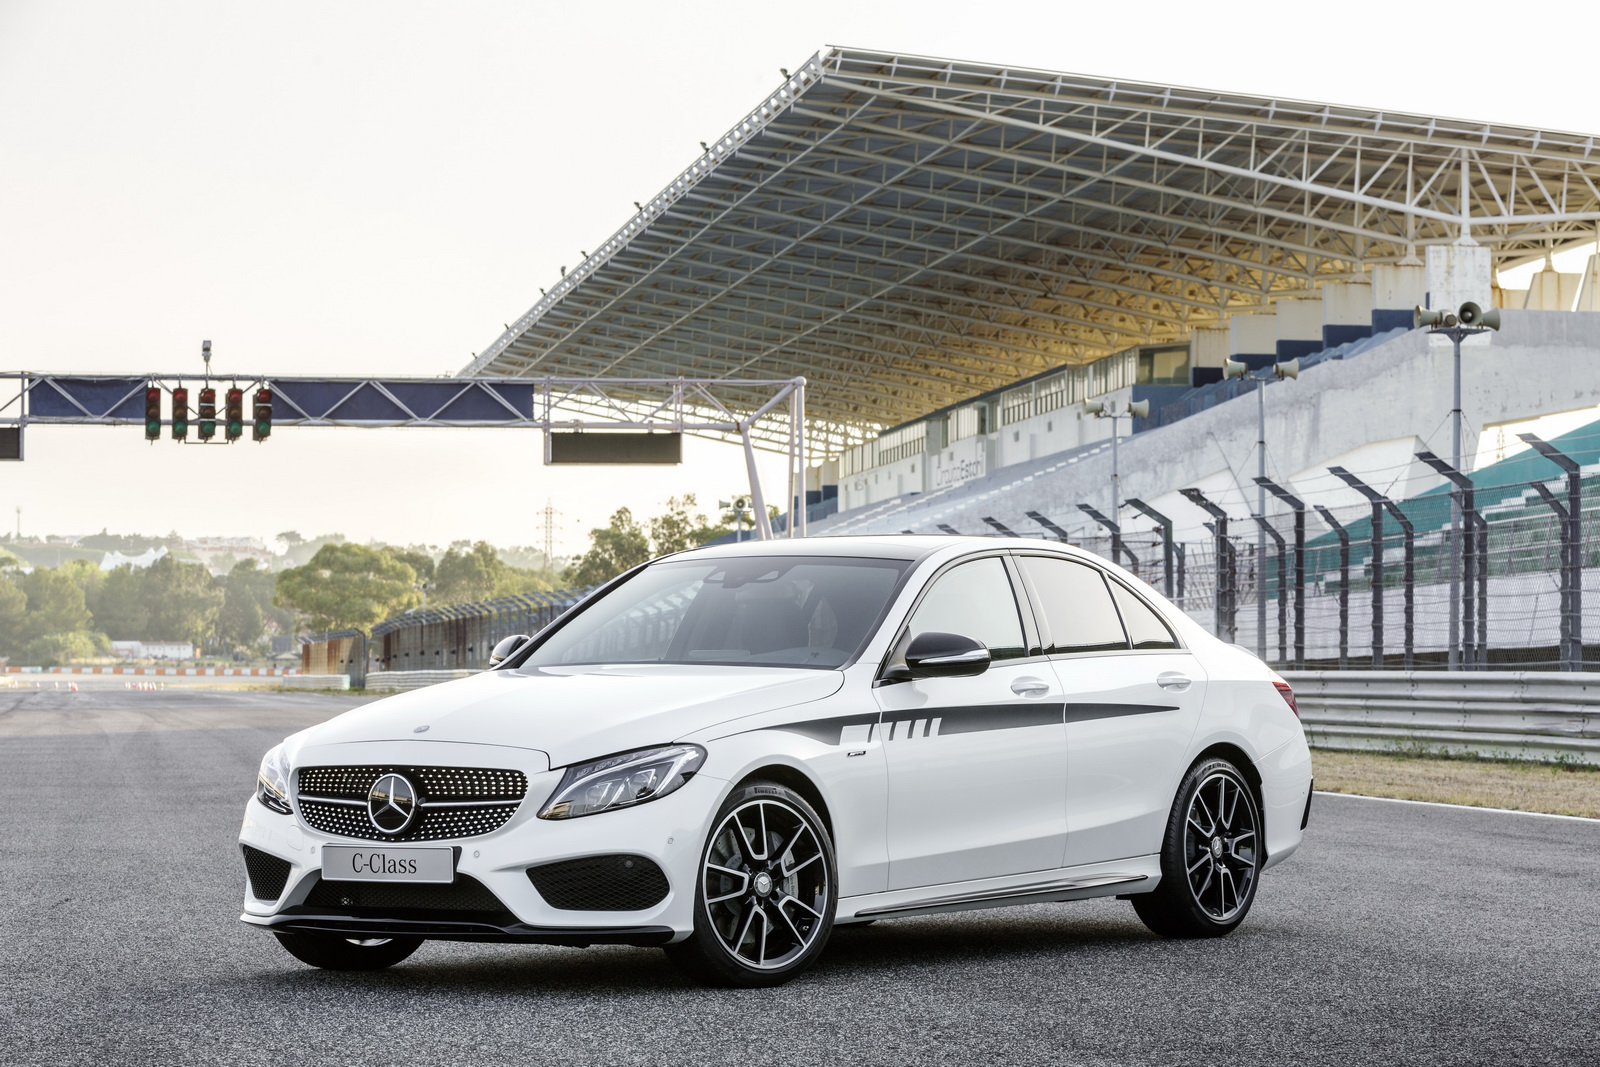 Mercedes amg reveals new c class components gtspirit for Mercedes benz 300 amg